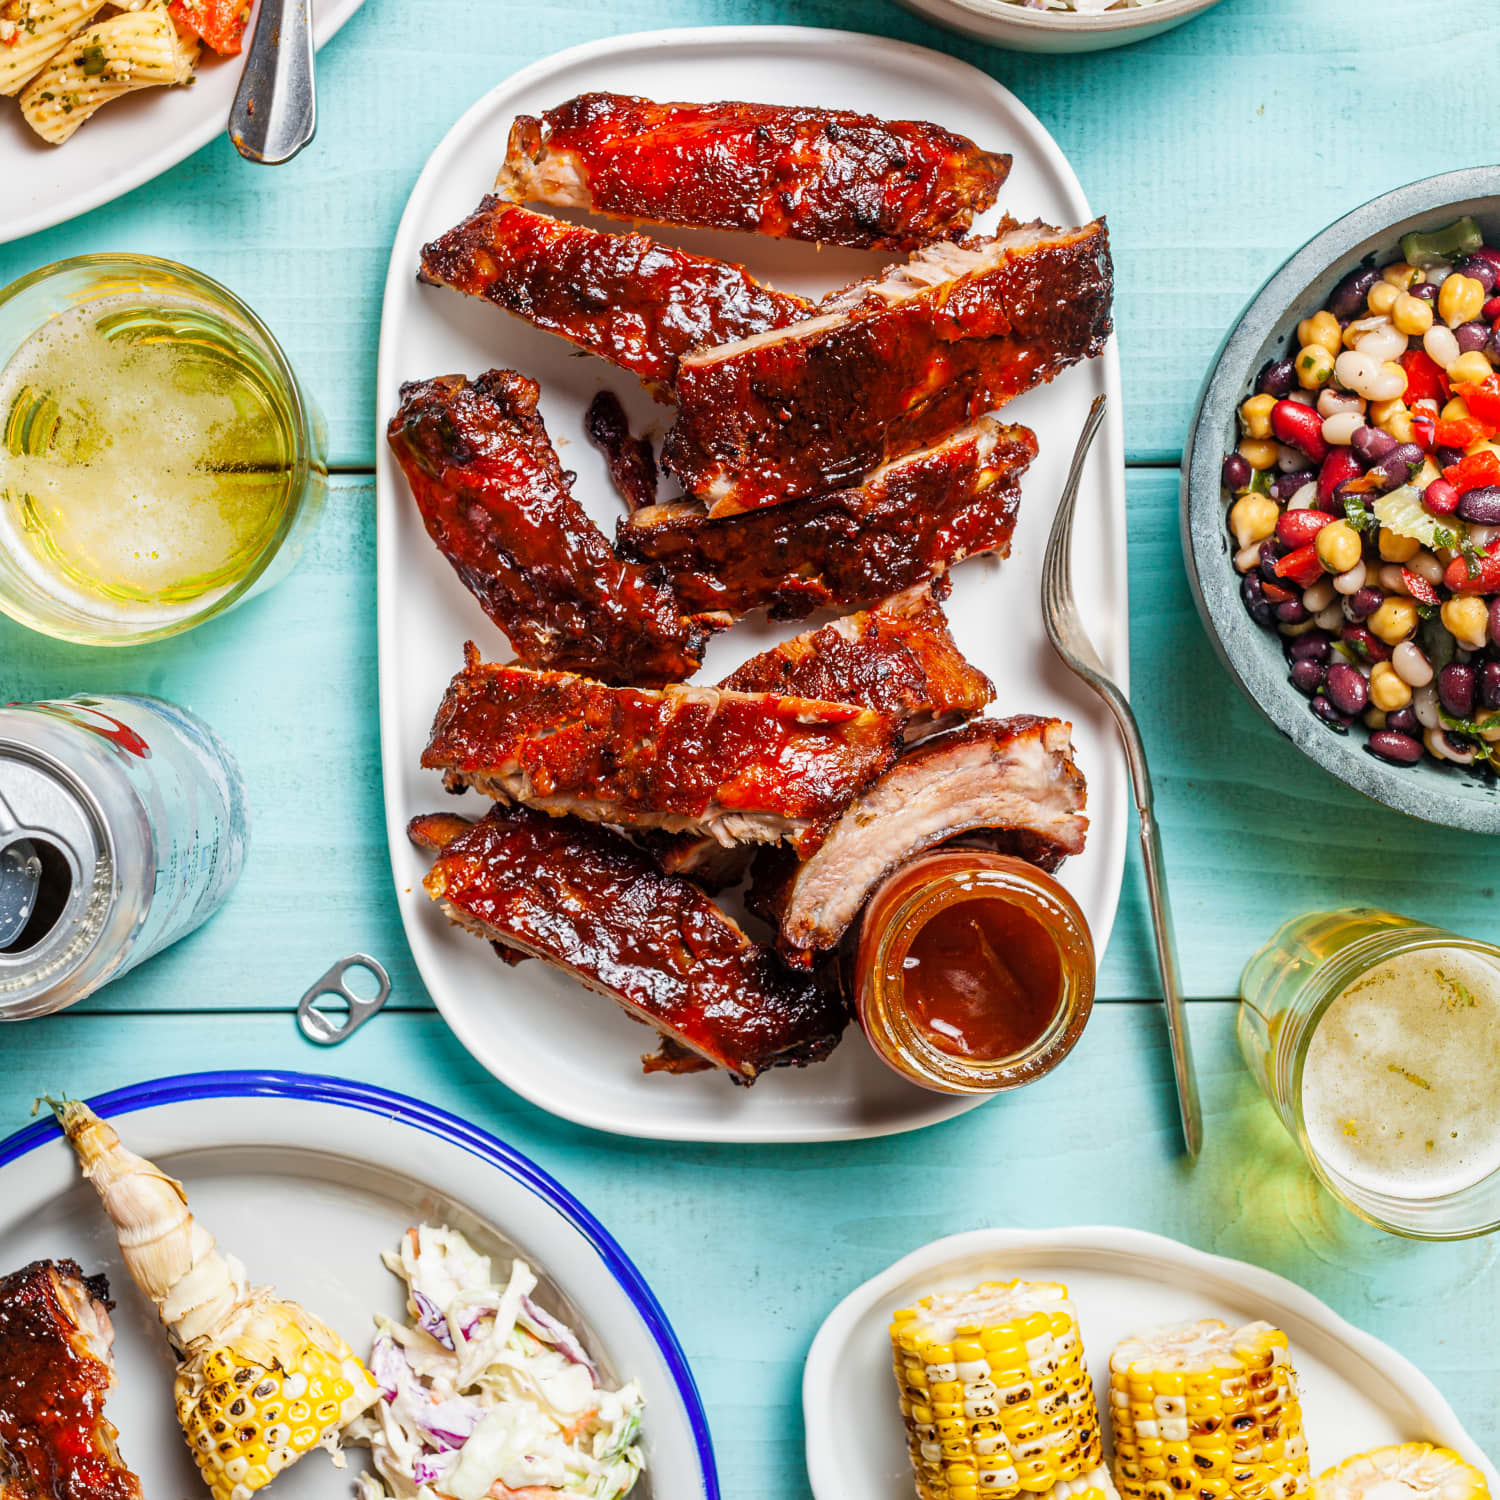 How To Make The Best Smoked Ribs Kitchn,How To Clean A Bathtub With Vinegar